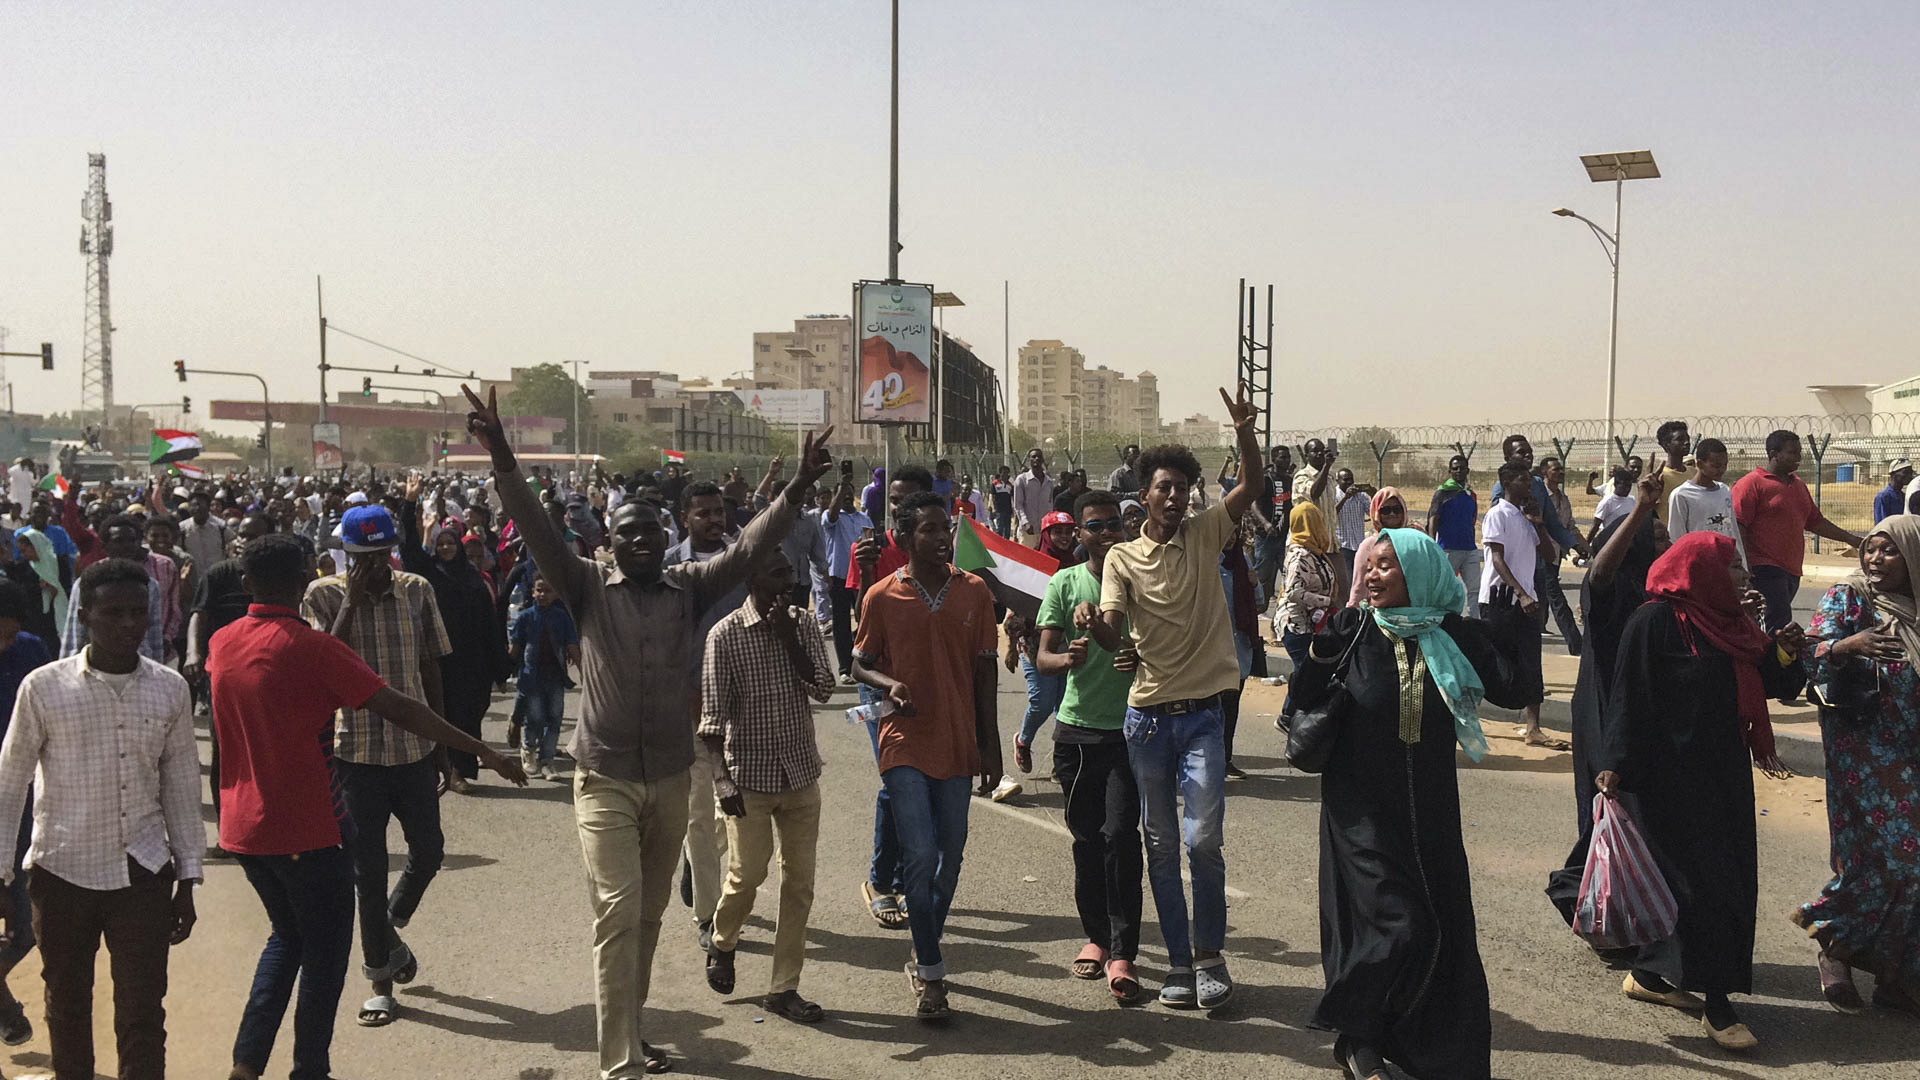 Sudanese celebrate after officials said the military had forced longtime autocratic President Omar al-Bashir to step down after 30 years in power in Khartoum